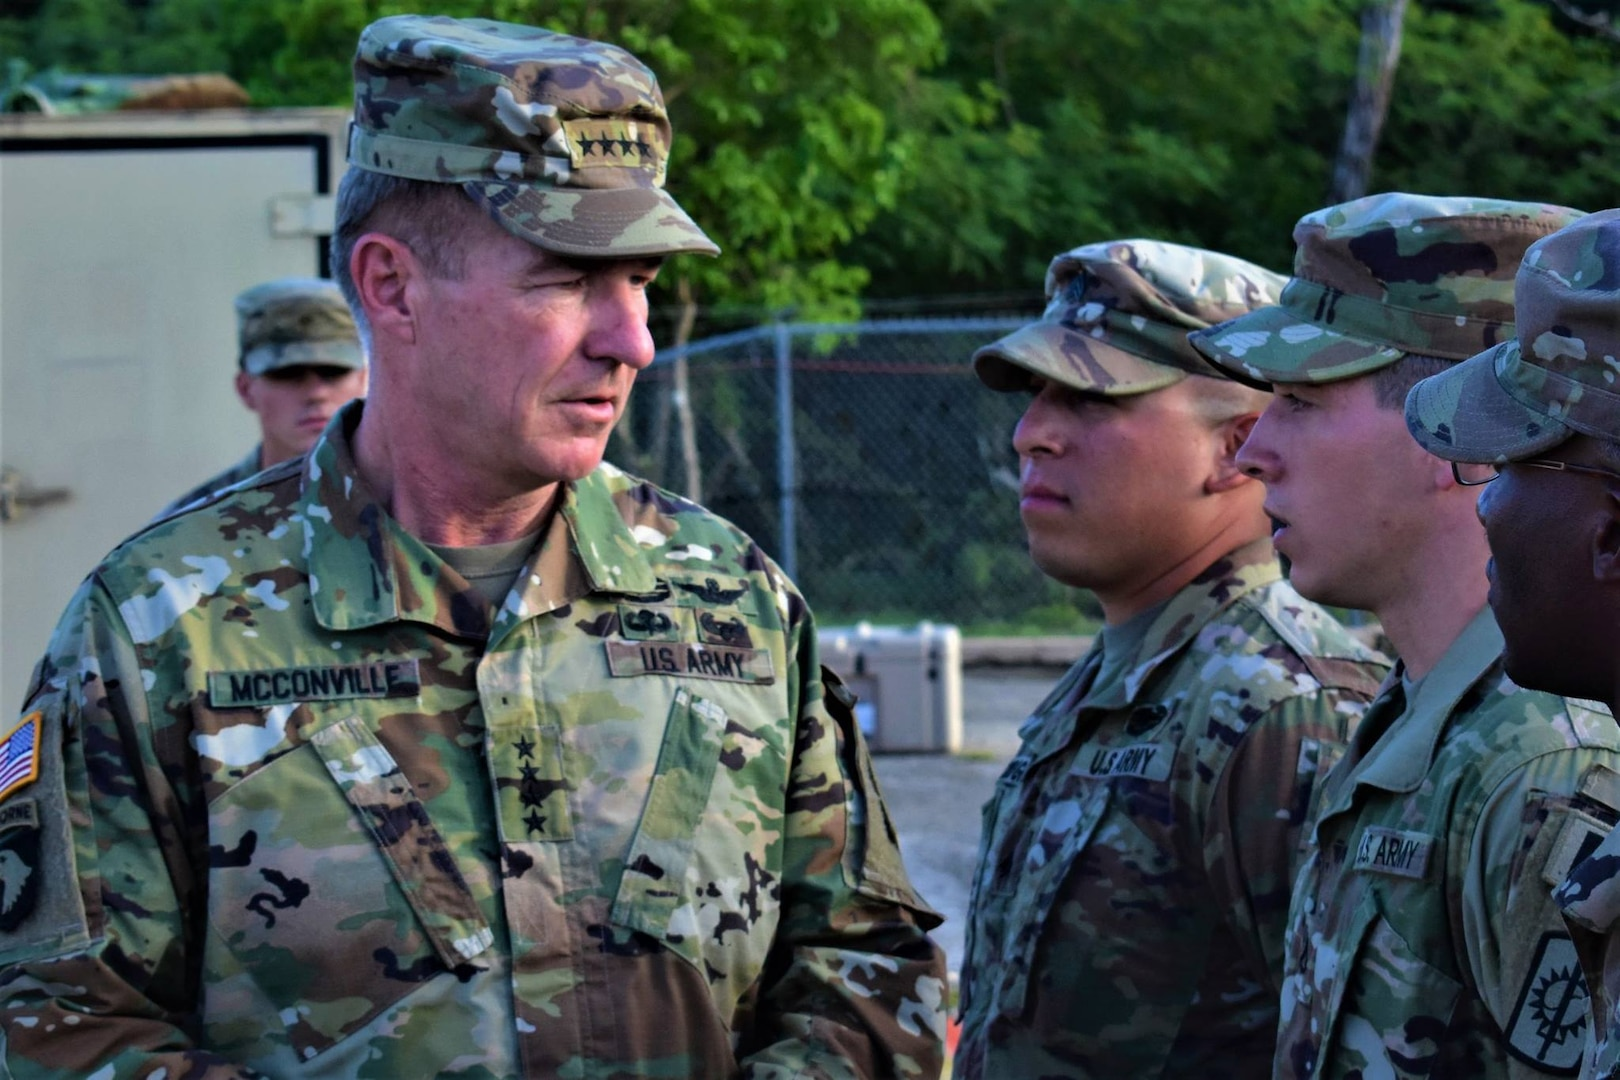 The 36th Vice Chief of Staff of the United States Army Gen. James C. McConville visited Soldiers from the 58th Military Police Company, 728th MP Bn., 8th Military Police Brigade in November 2017. Gen McConville engaged with the Soldiers about their mission before presenting them with a Coin of Excellence for their exceptional performance while conducting critical site security. The 58th Military Police Company serves as the security force in support of the 94th Army Air Missile Defense Command-led Joint Task Force Talon in Guam.